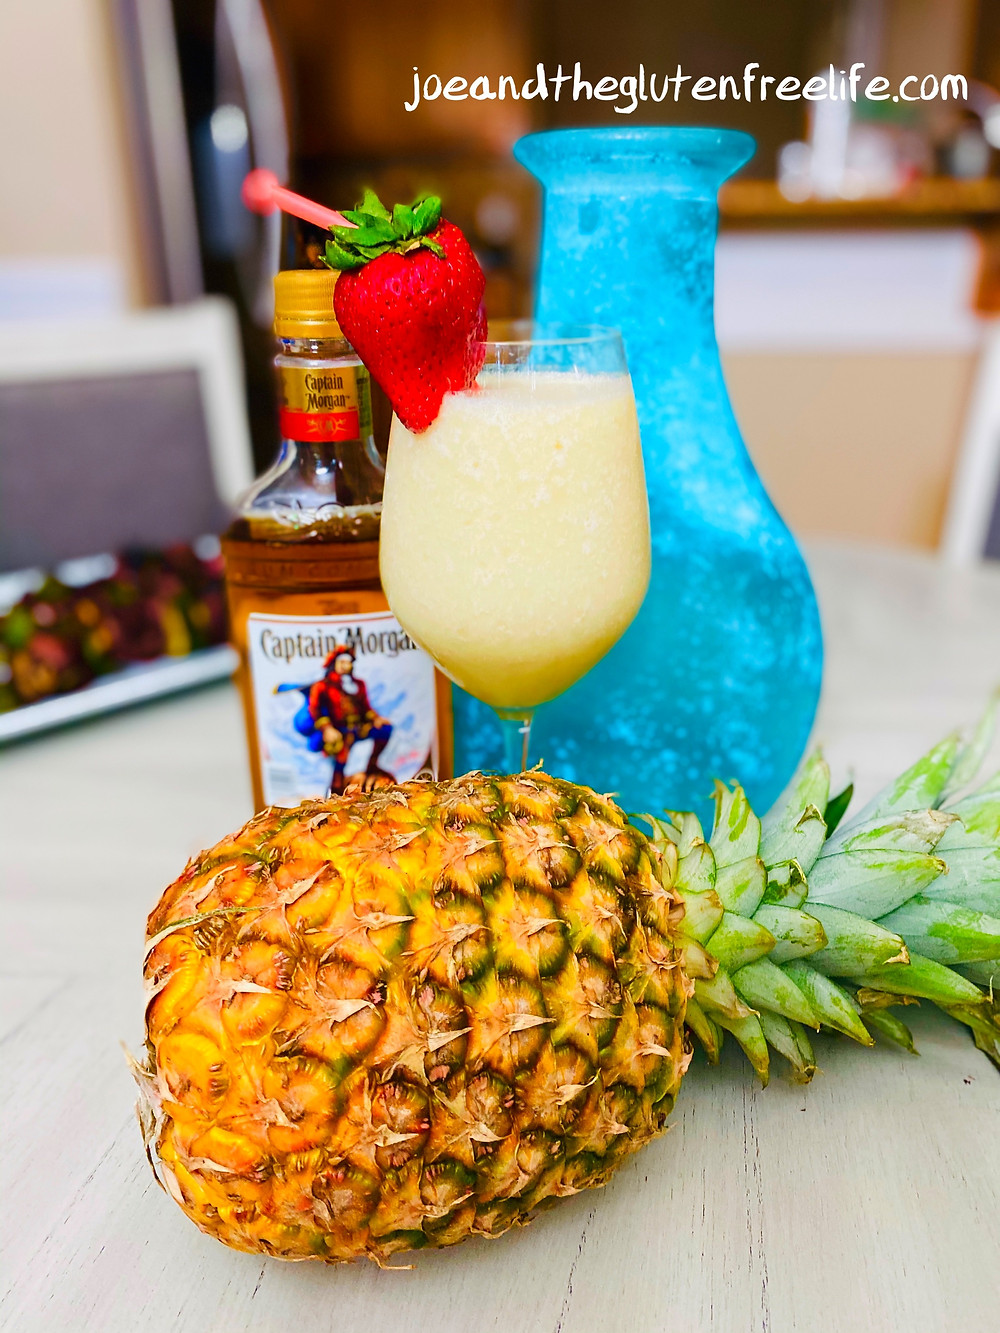 Easy to make refreshing Piña Colada made with Captain Morgan Spiced Rum.